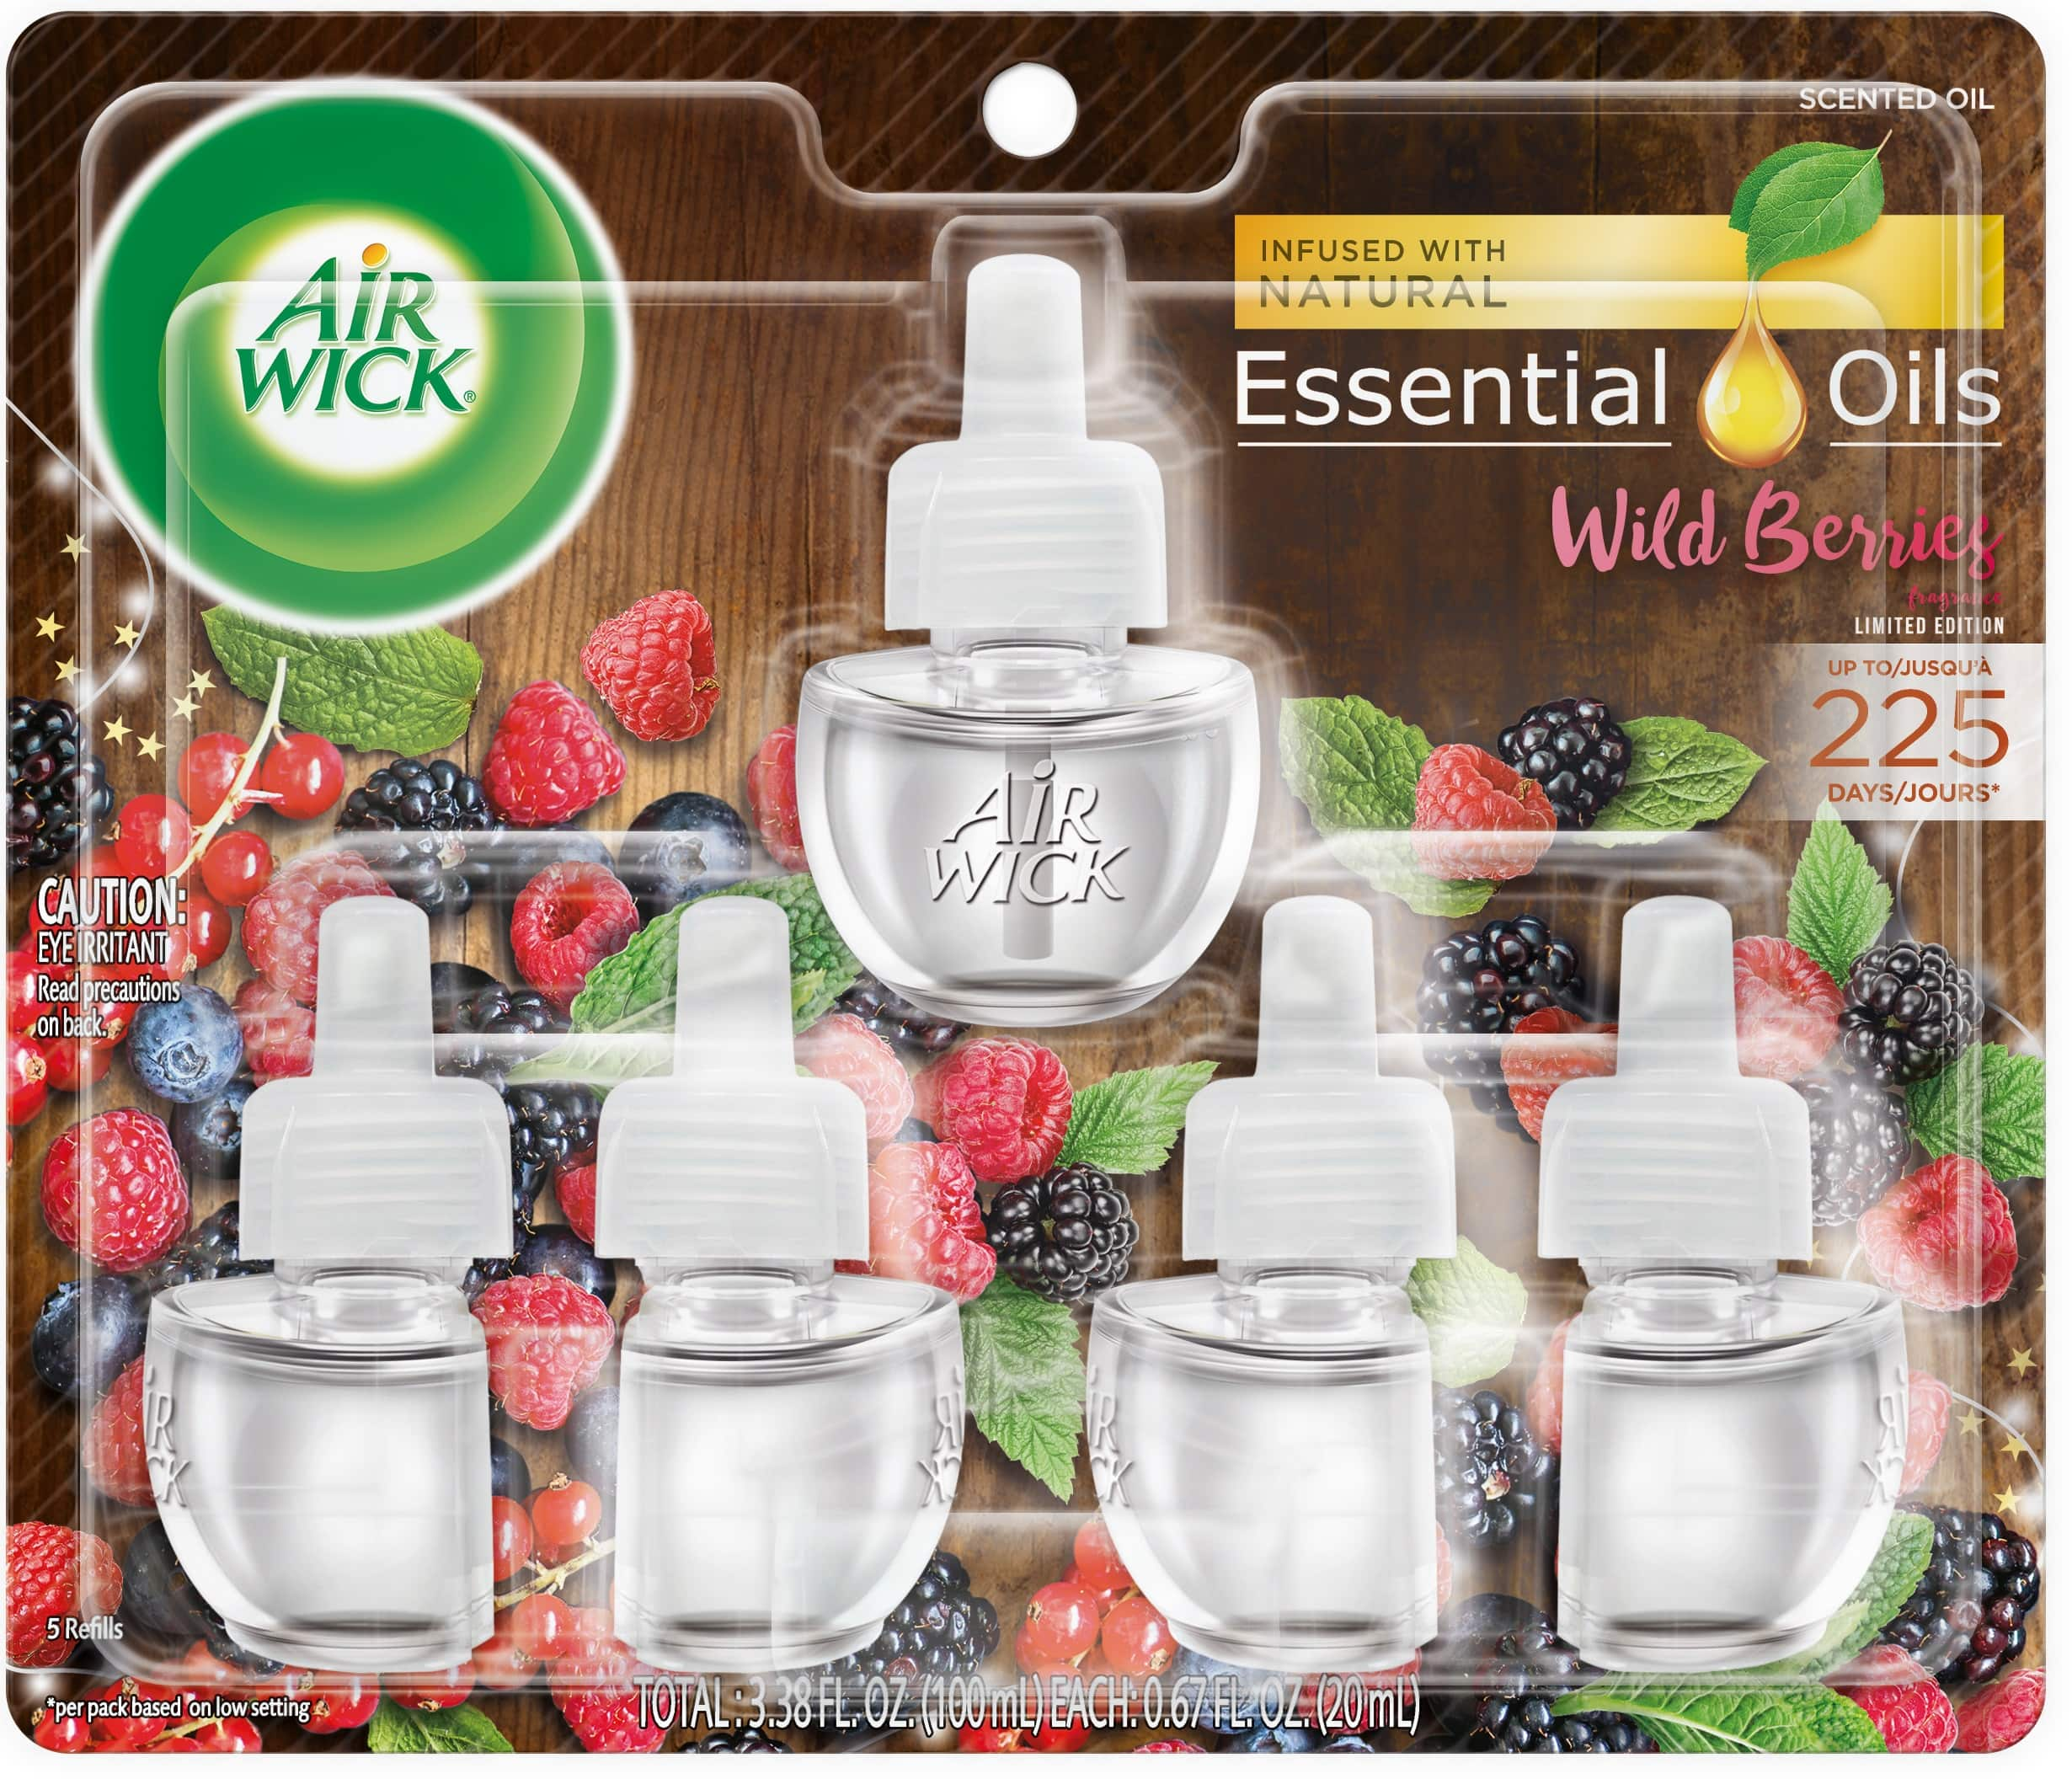 5-Pack Air Wick Plug in Scented Oil Refills (Wild Berries Scent)